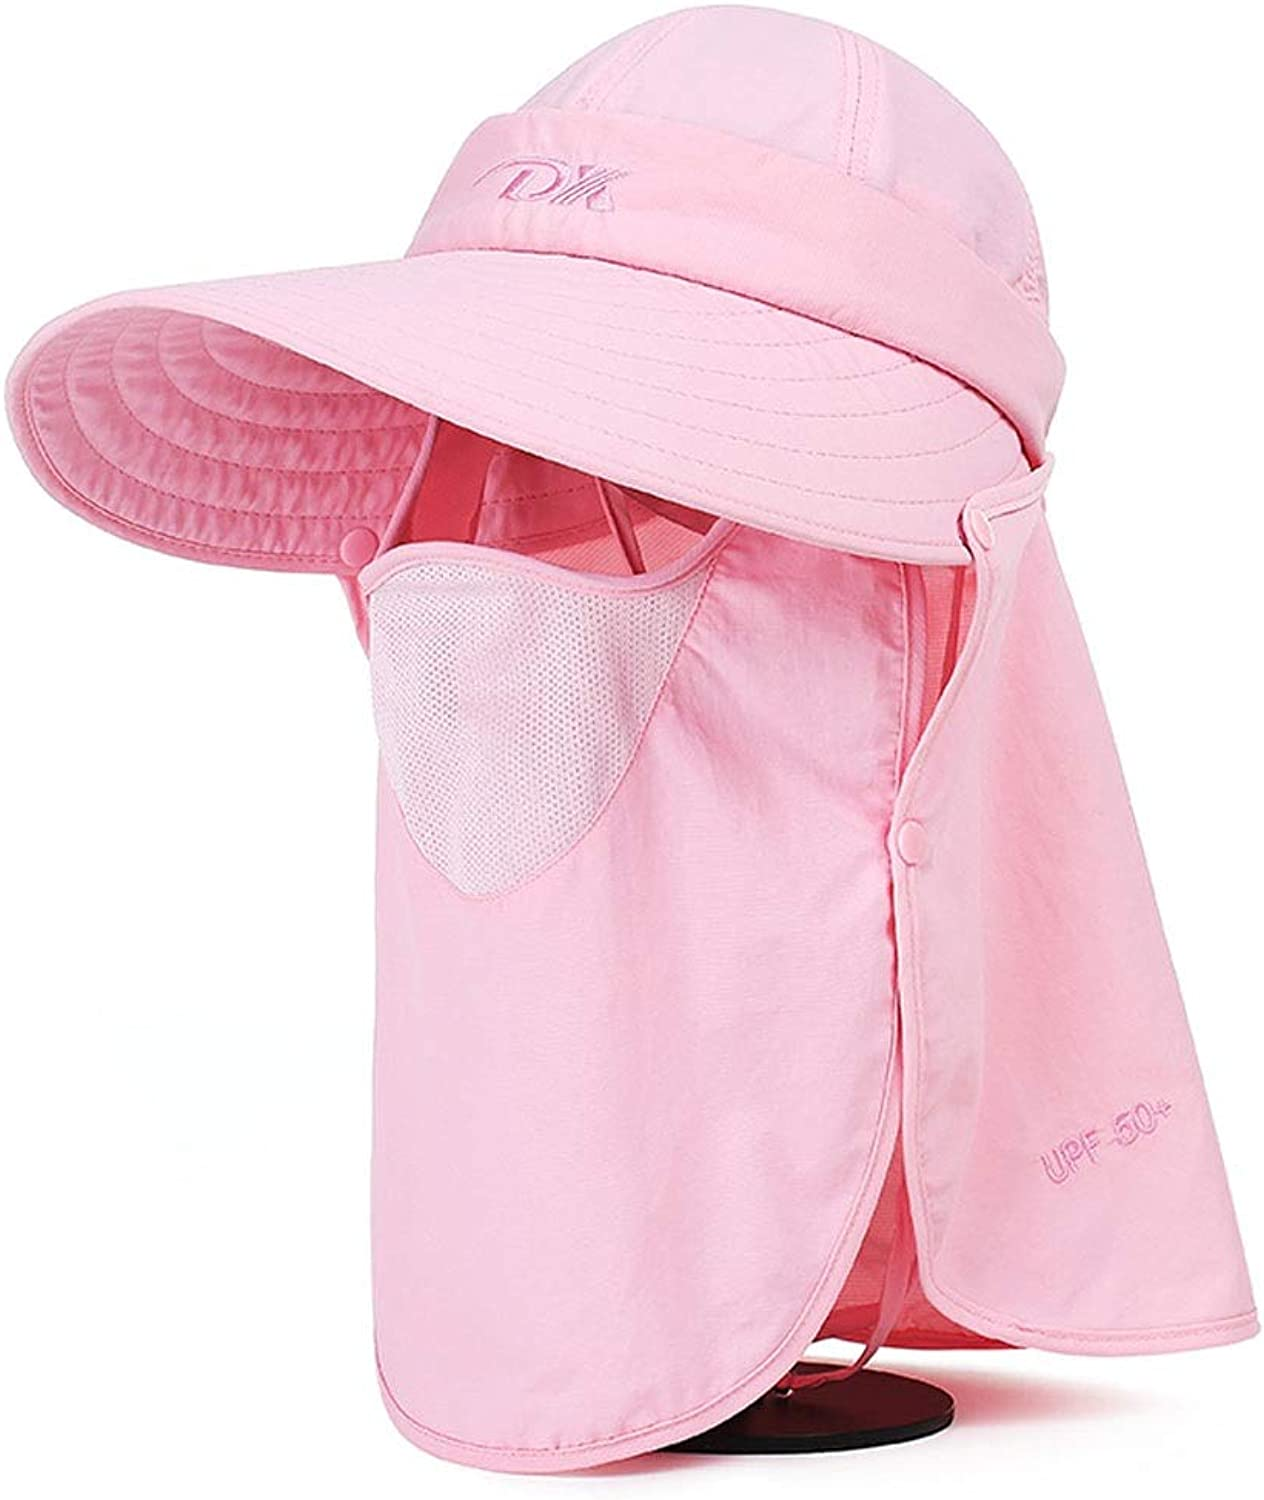 Sun Predection Hat, Female, Summer, Outdoor Travel Cycling Face Visor, UV Predection Sun Hat Foldable (color   Pink)